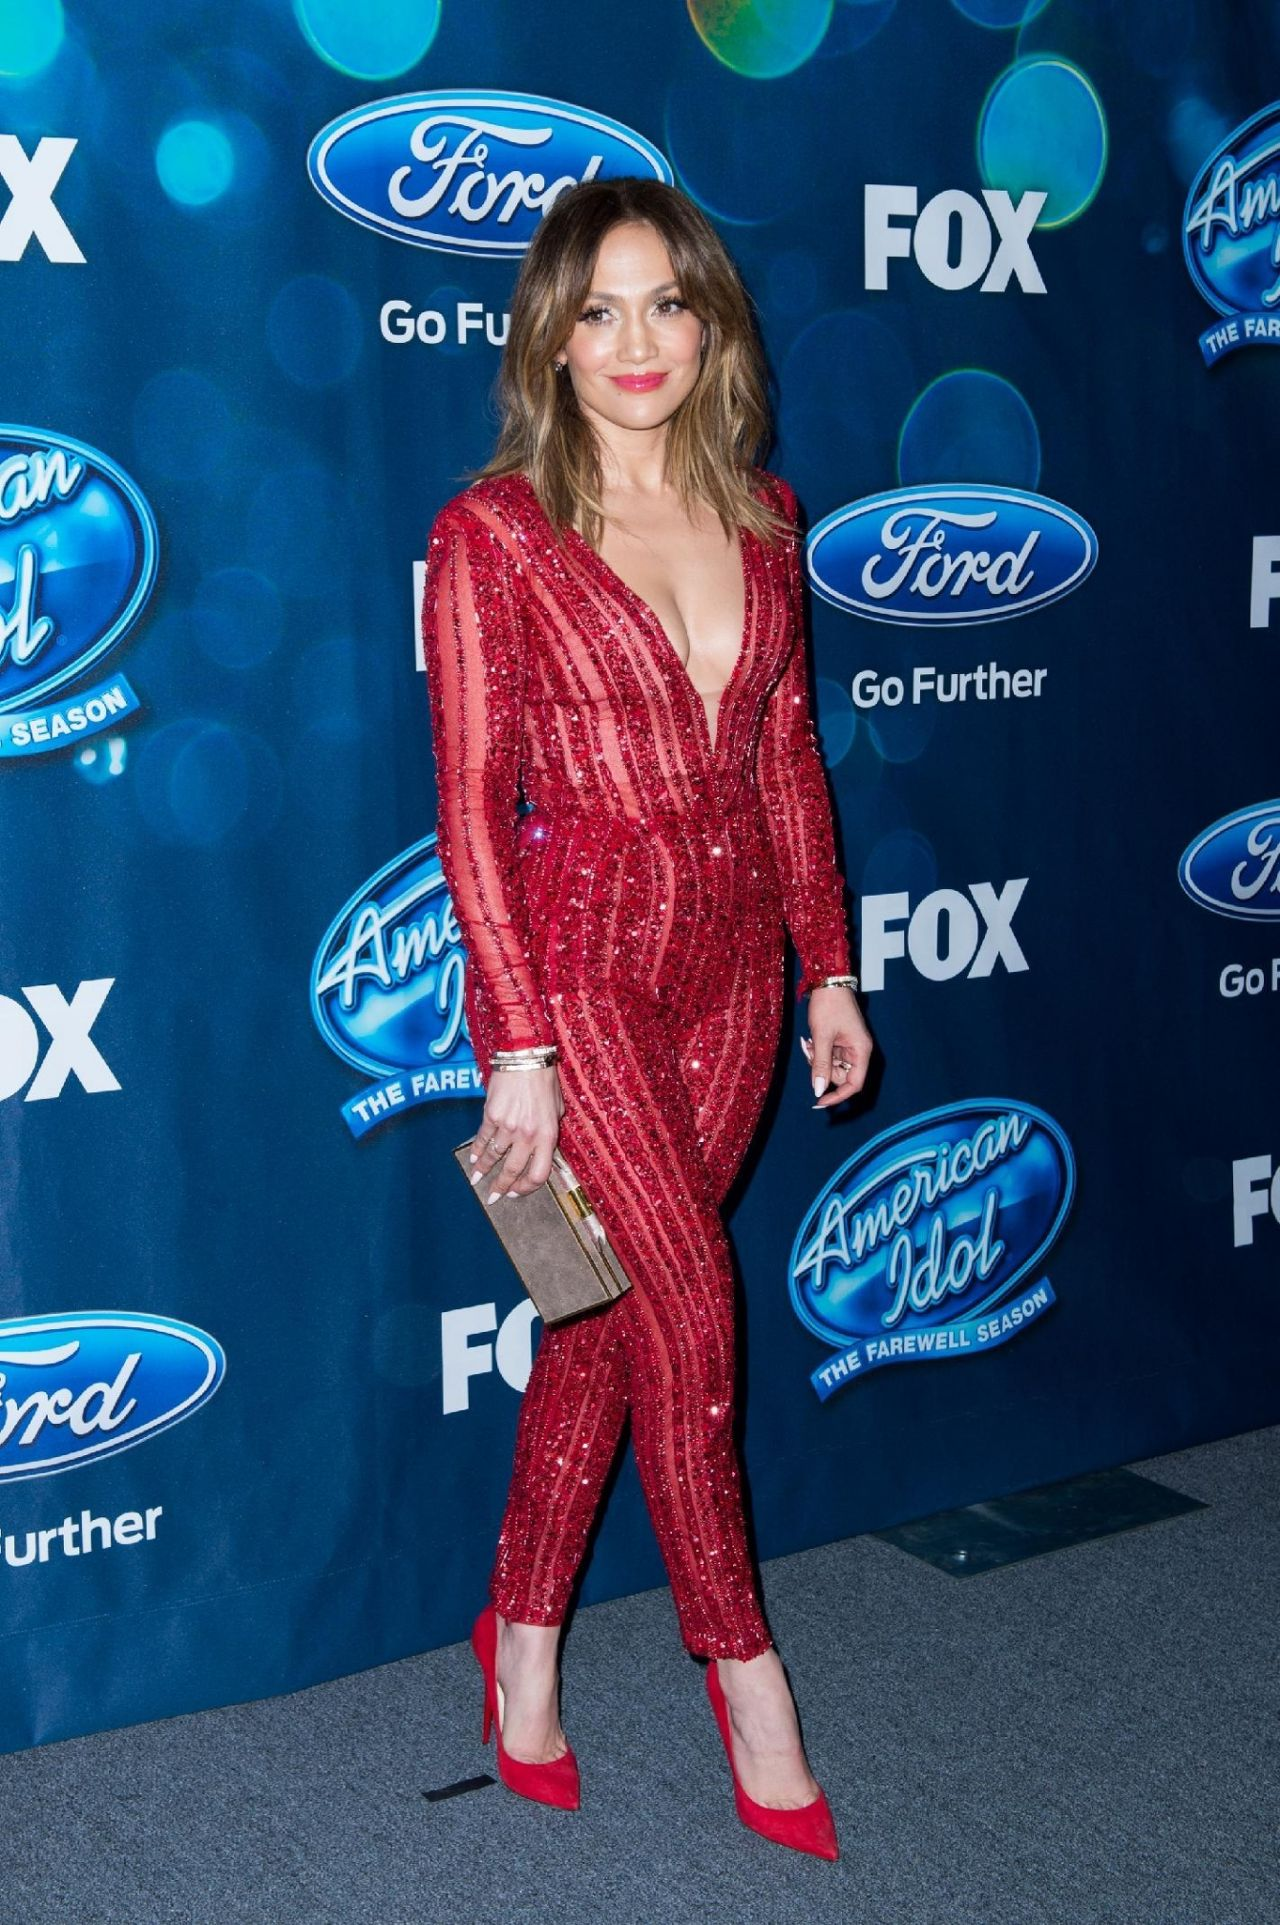 jennifer-lopez-looks-red-hot-in-a-jumpsuit-american-idol-xv-finalists-party-in-west-hollywood-2-25-2016-3